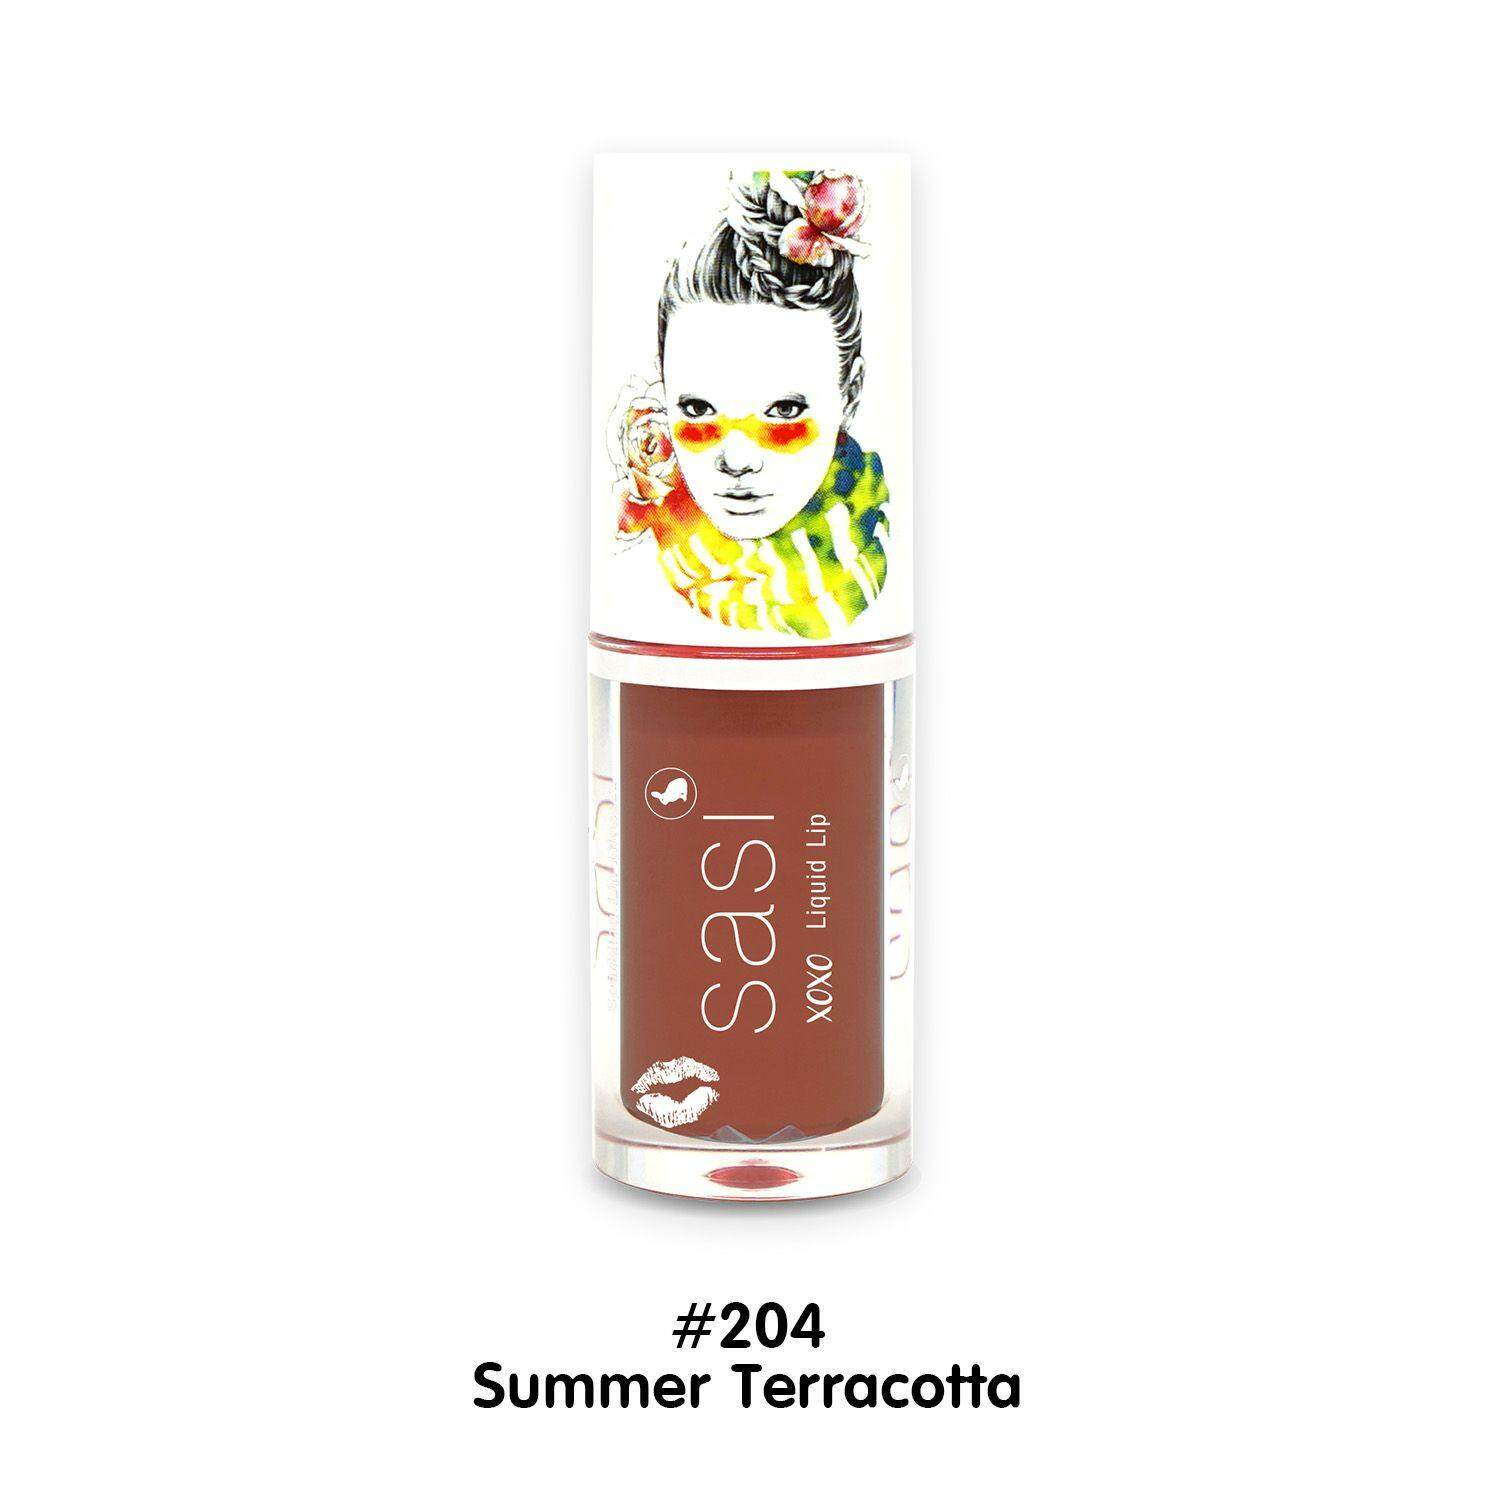 Sasi Xoxo Liquid lip Summer terracotto #204 x 1 ขวด